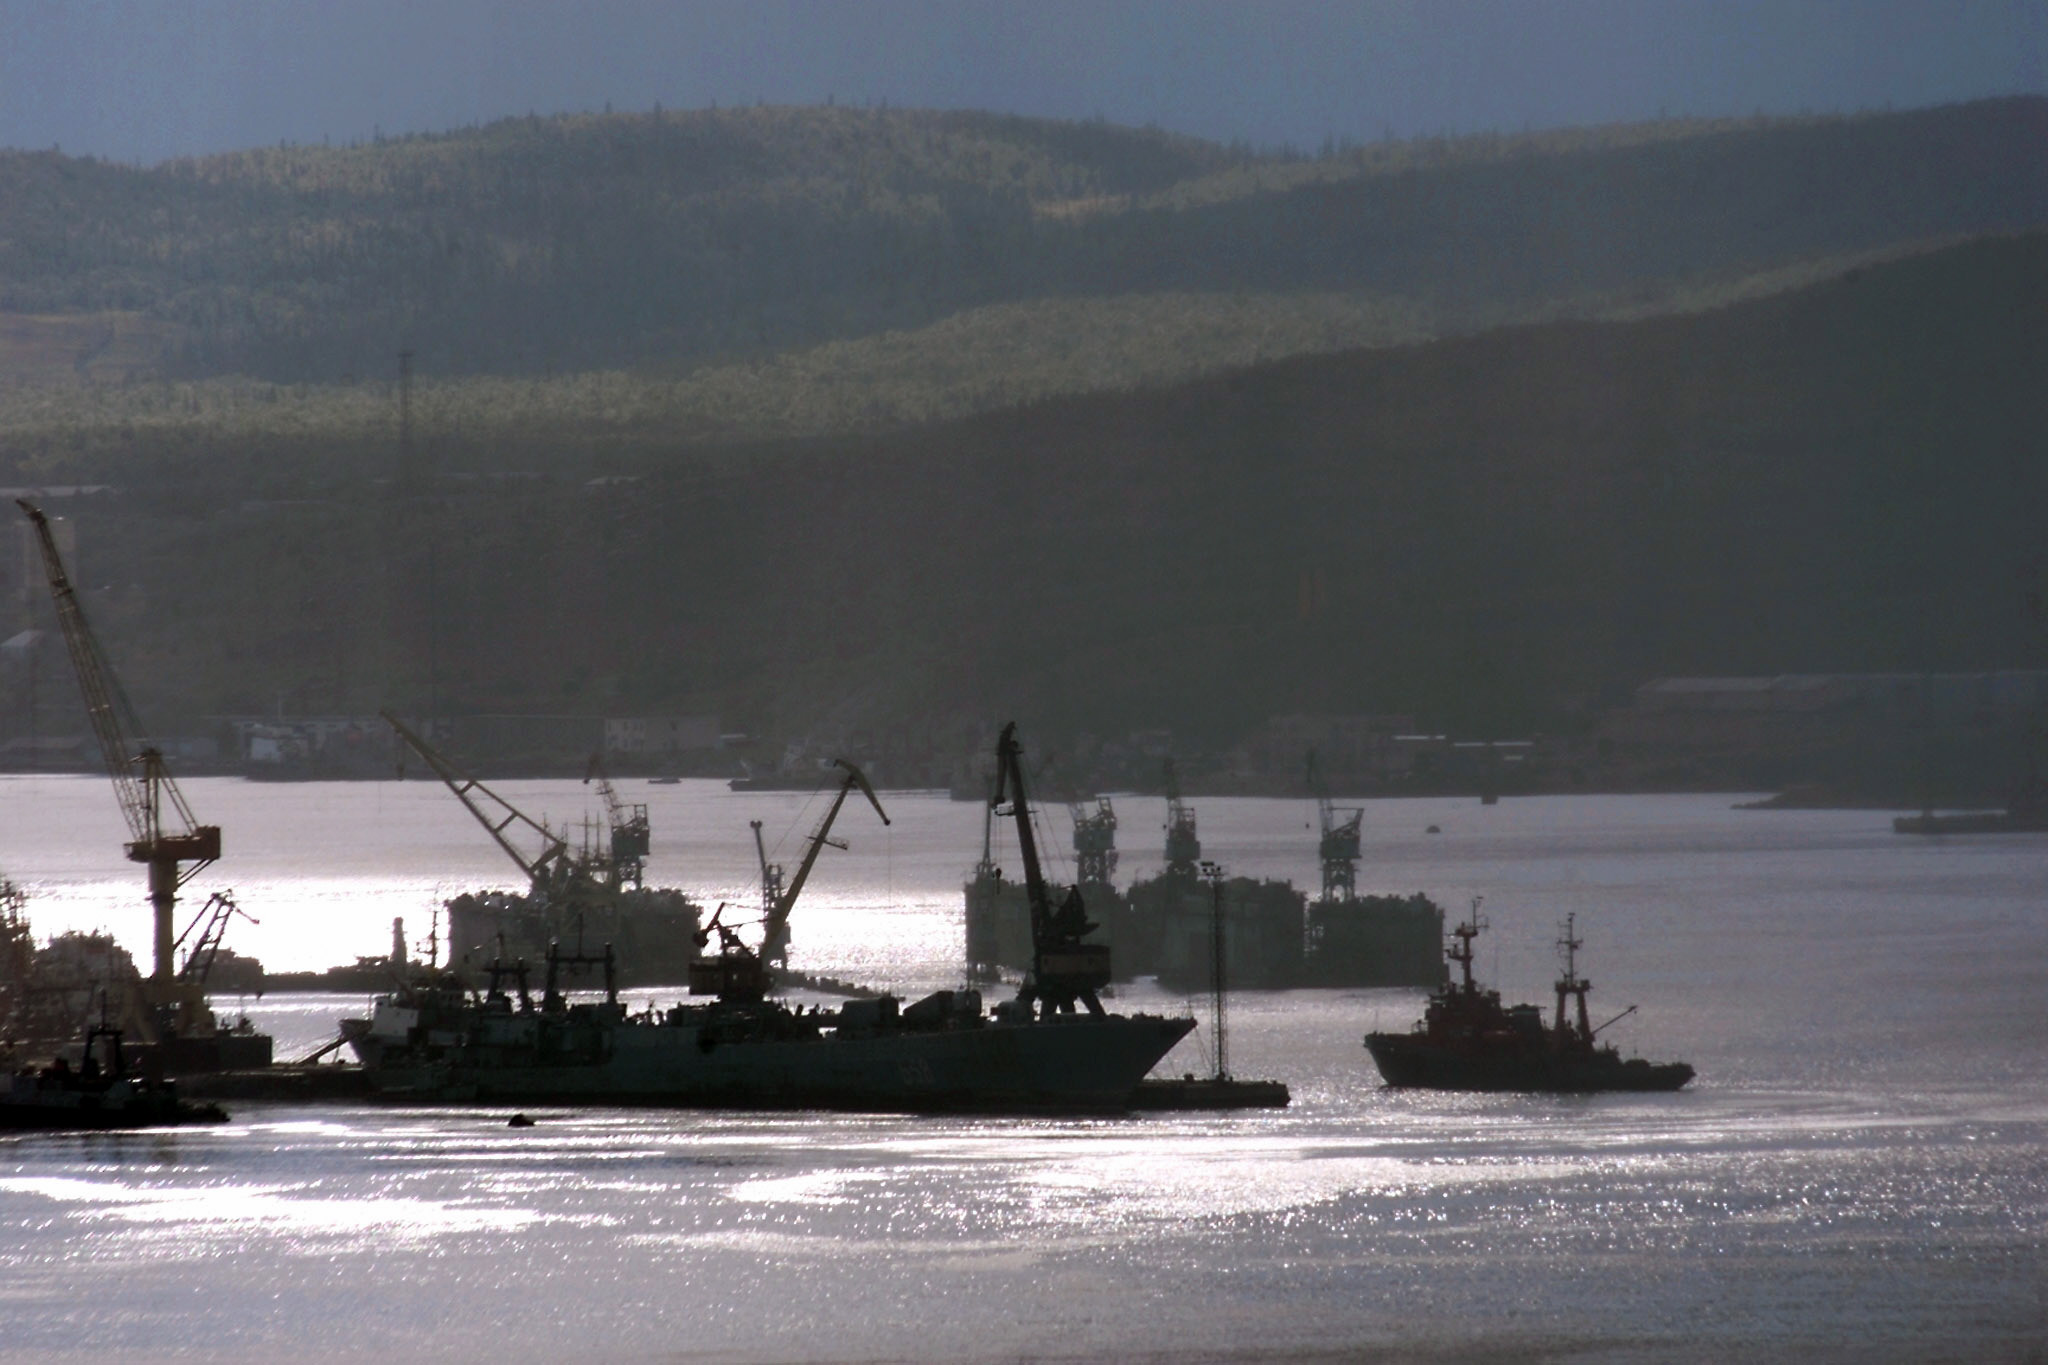 The northern port of Murmansk in Kol'skiy (Kola) peninsula on the Barents Sea. (Alexander Nemenov/AFP/Getty Images)